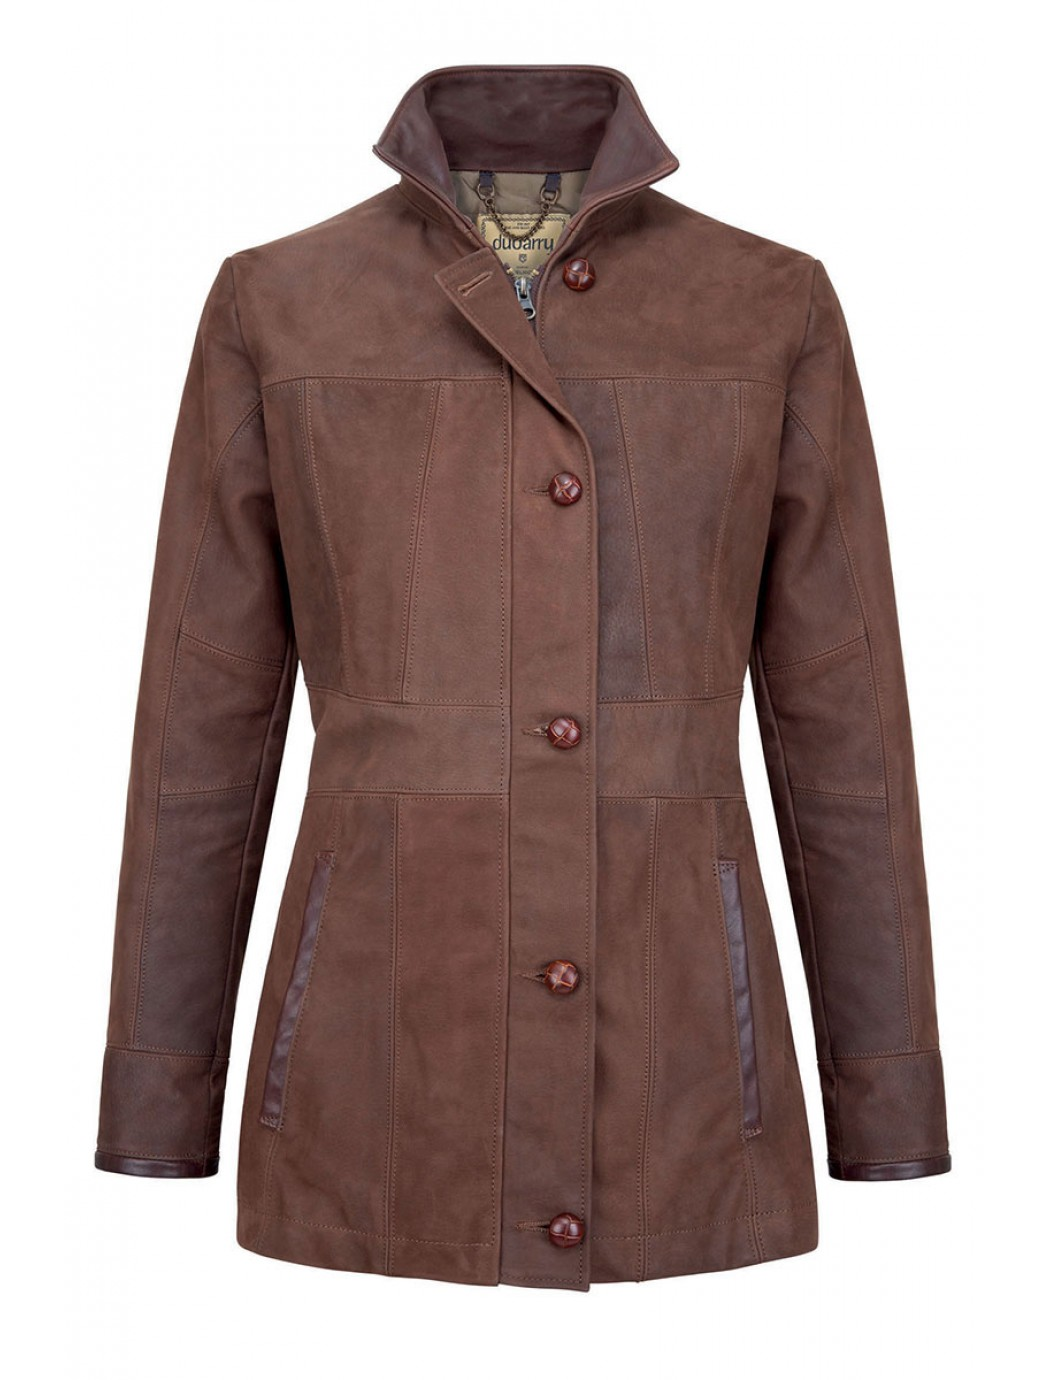 goldsmith-womens-jackets-walnut